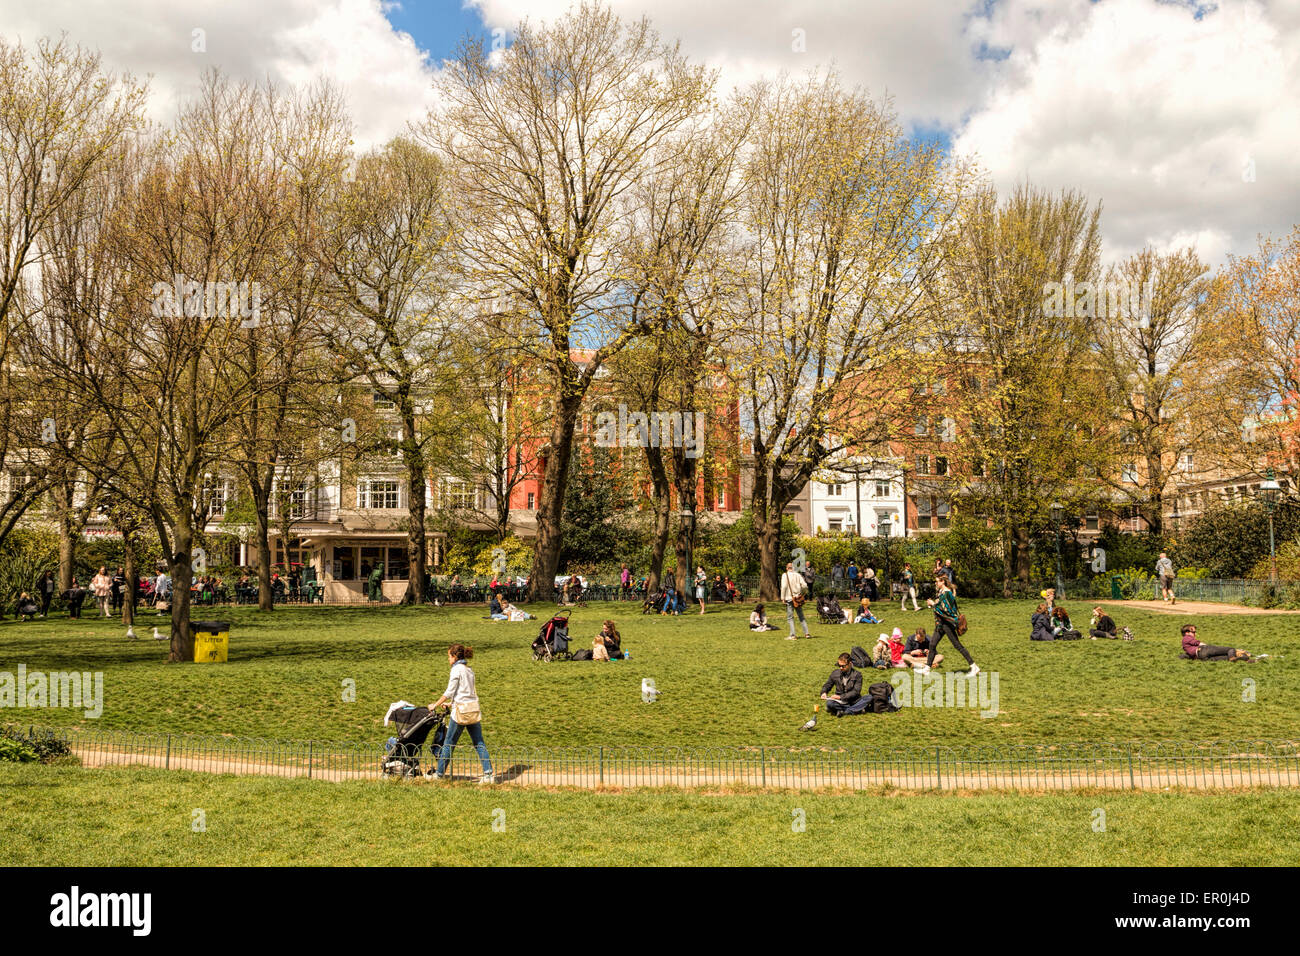 A relaxing mood on a sunny day in the Royal Pavilion Gardens, Brighton, East Sussex, England, United Kingdom. - Stock Image